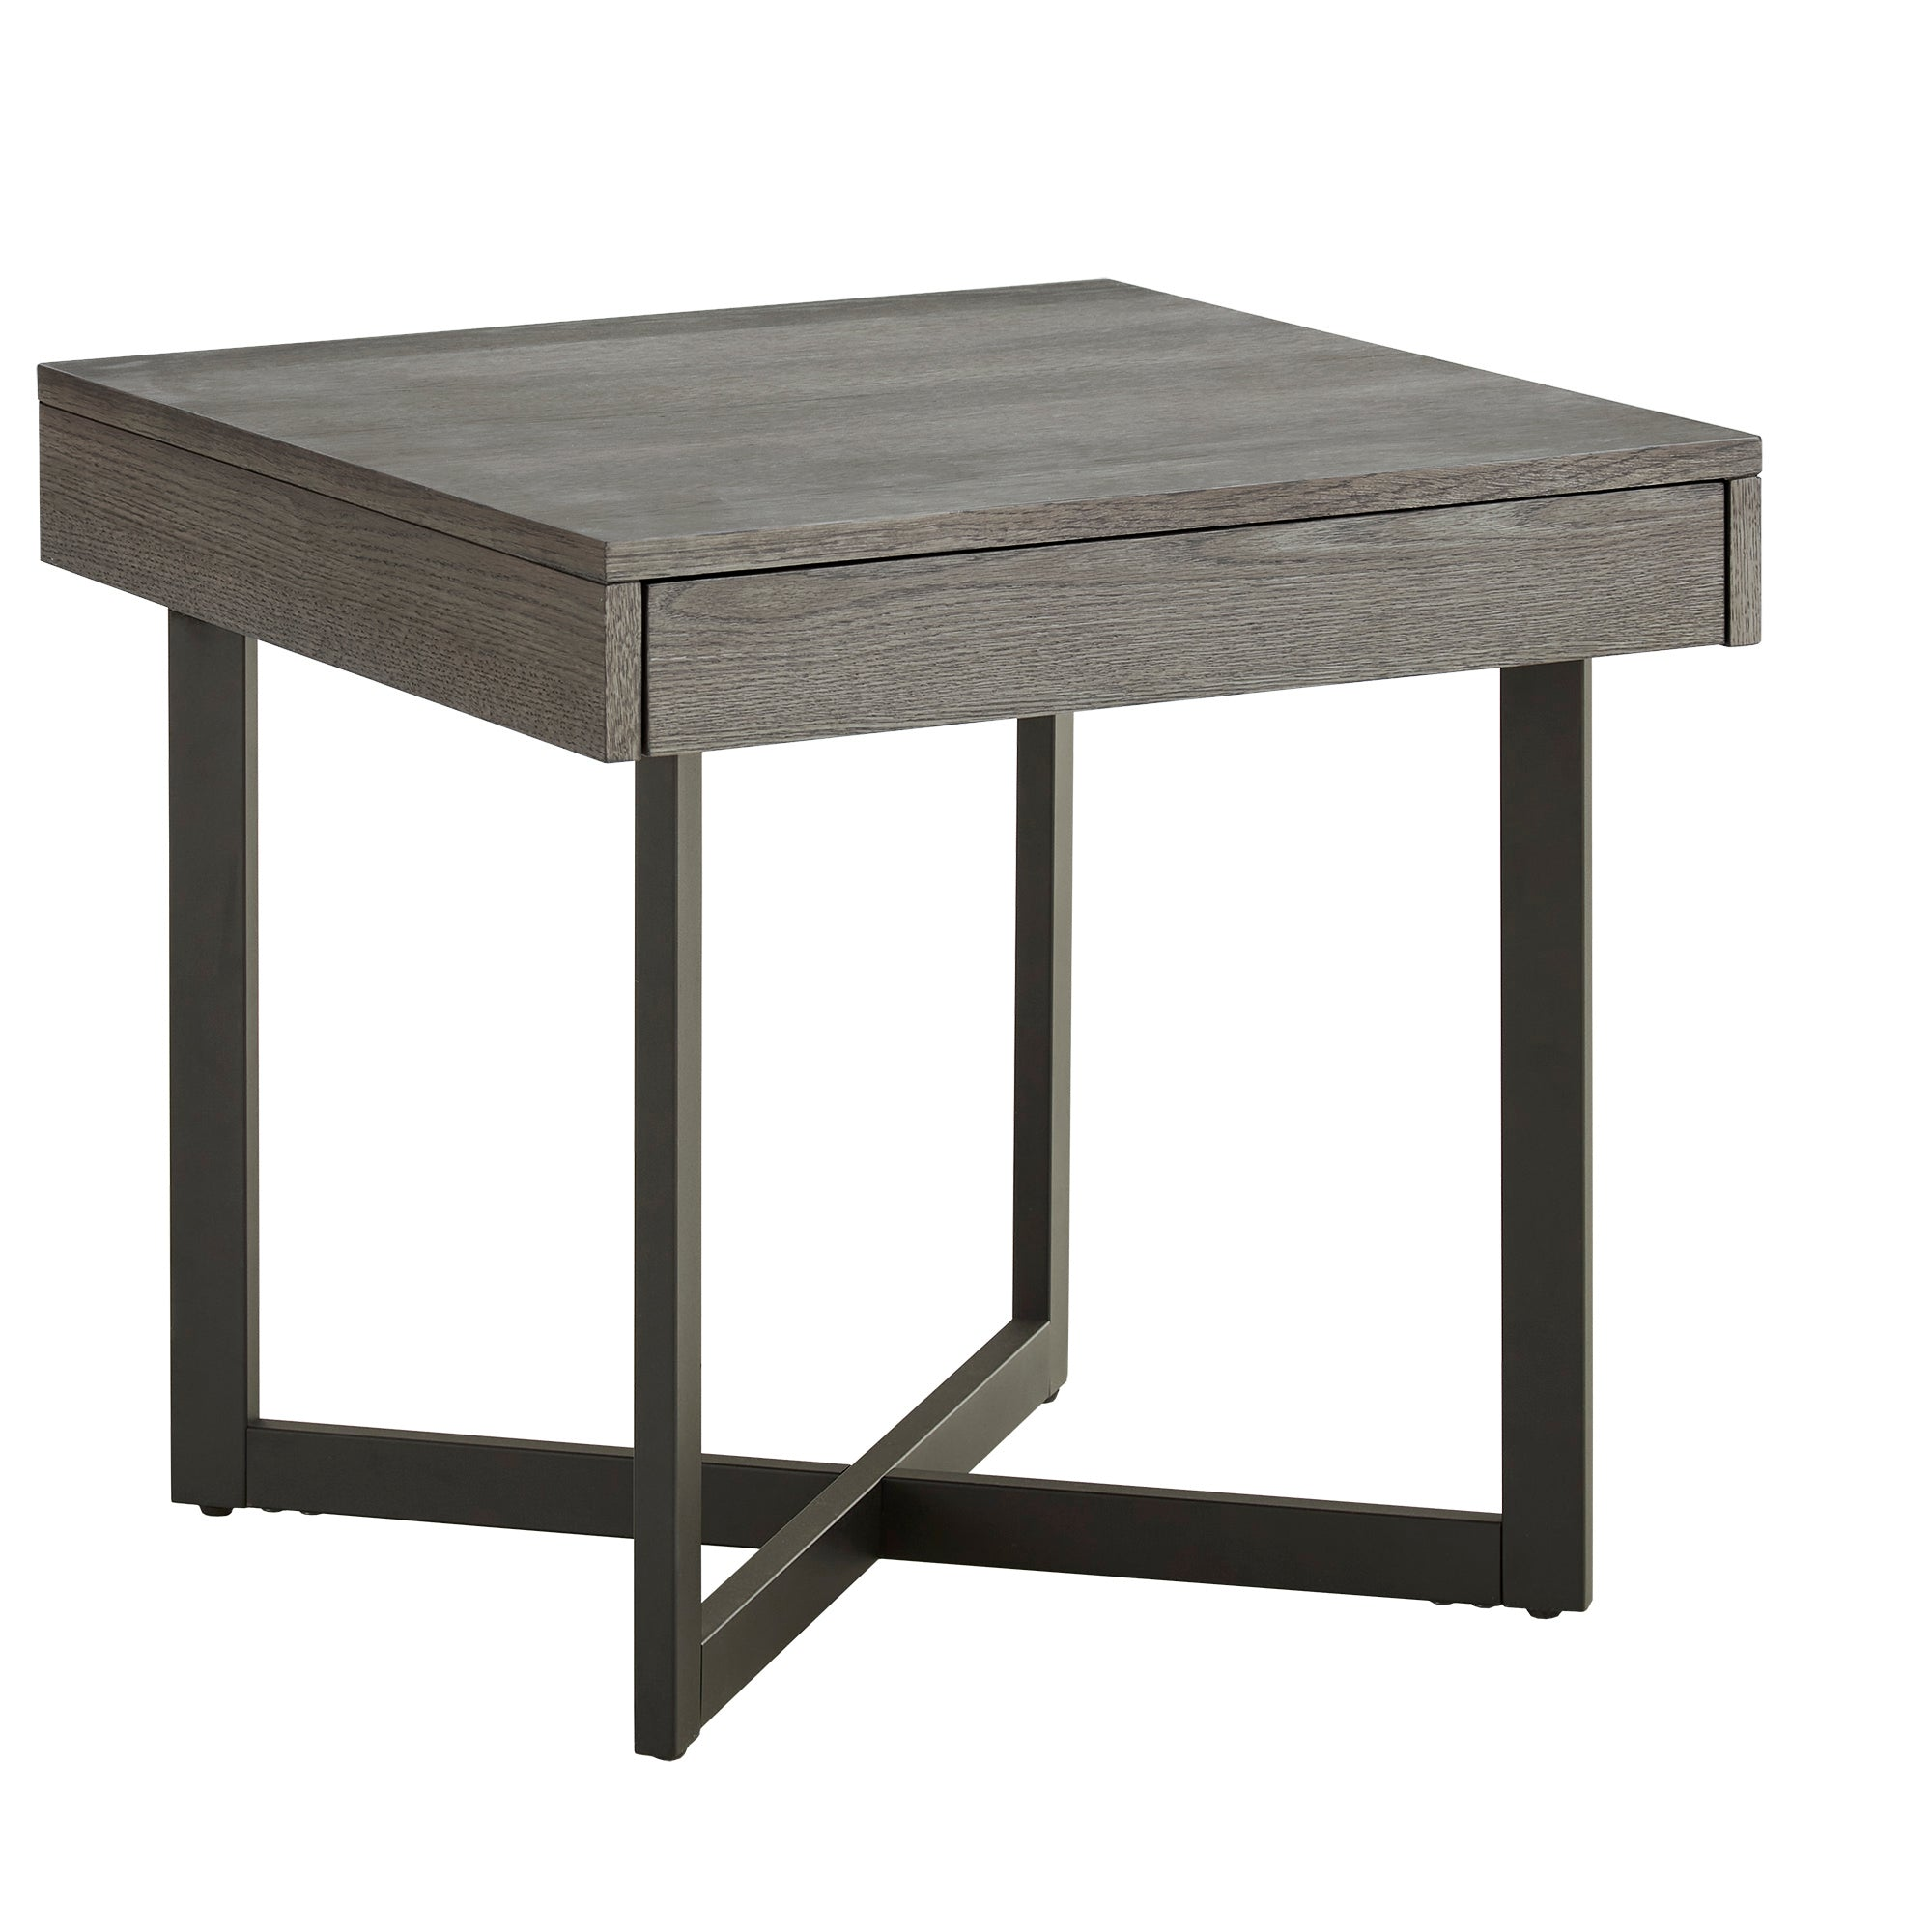 Antique Grey Finish Wood Finish End Table with One Drawer